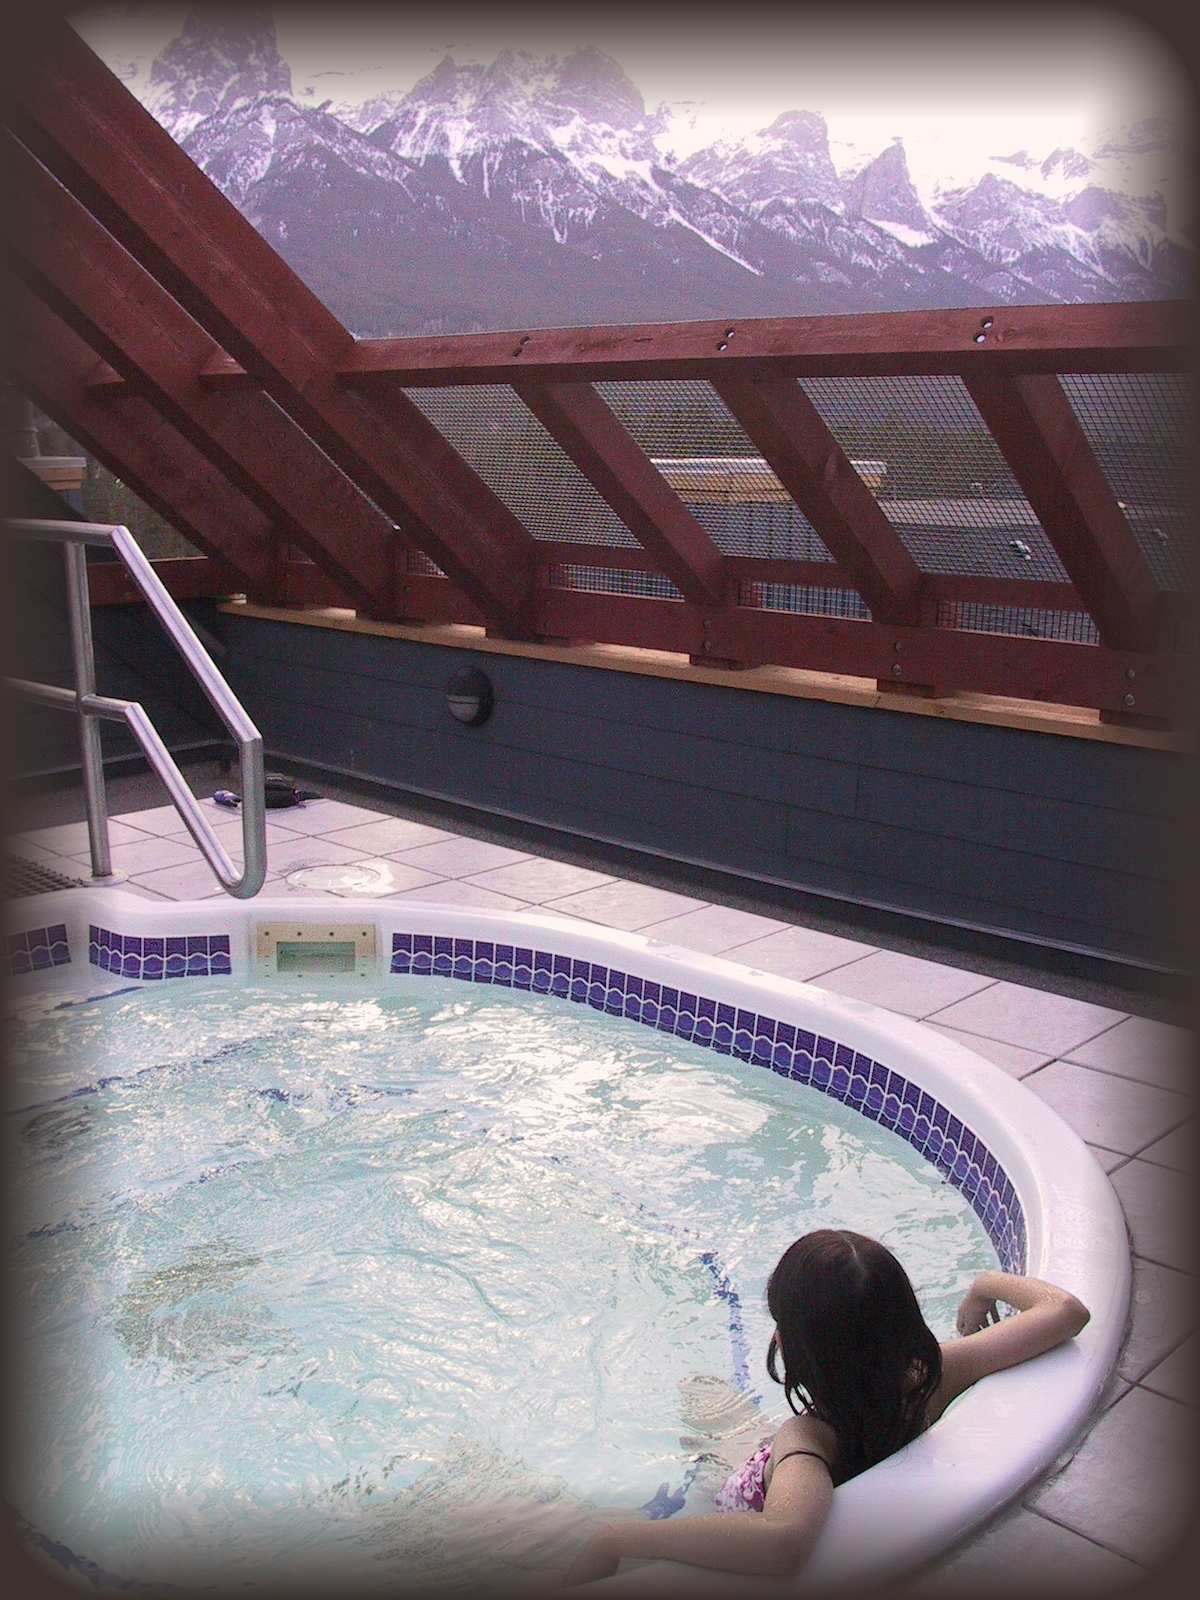 Soak up 360 degree panoramic views in the rooftop hot-tub!